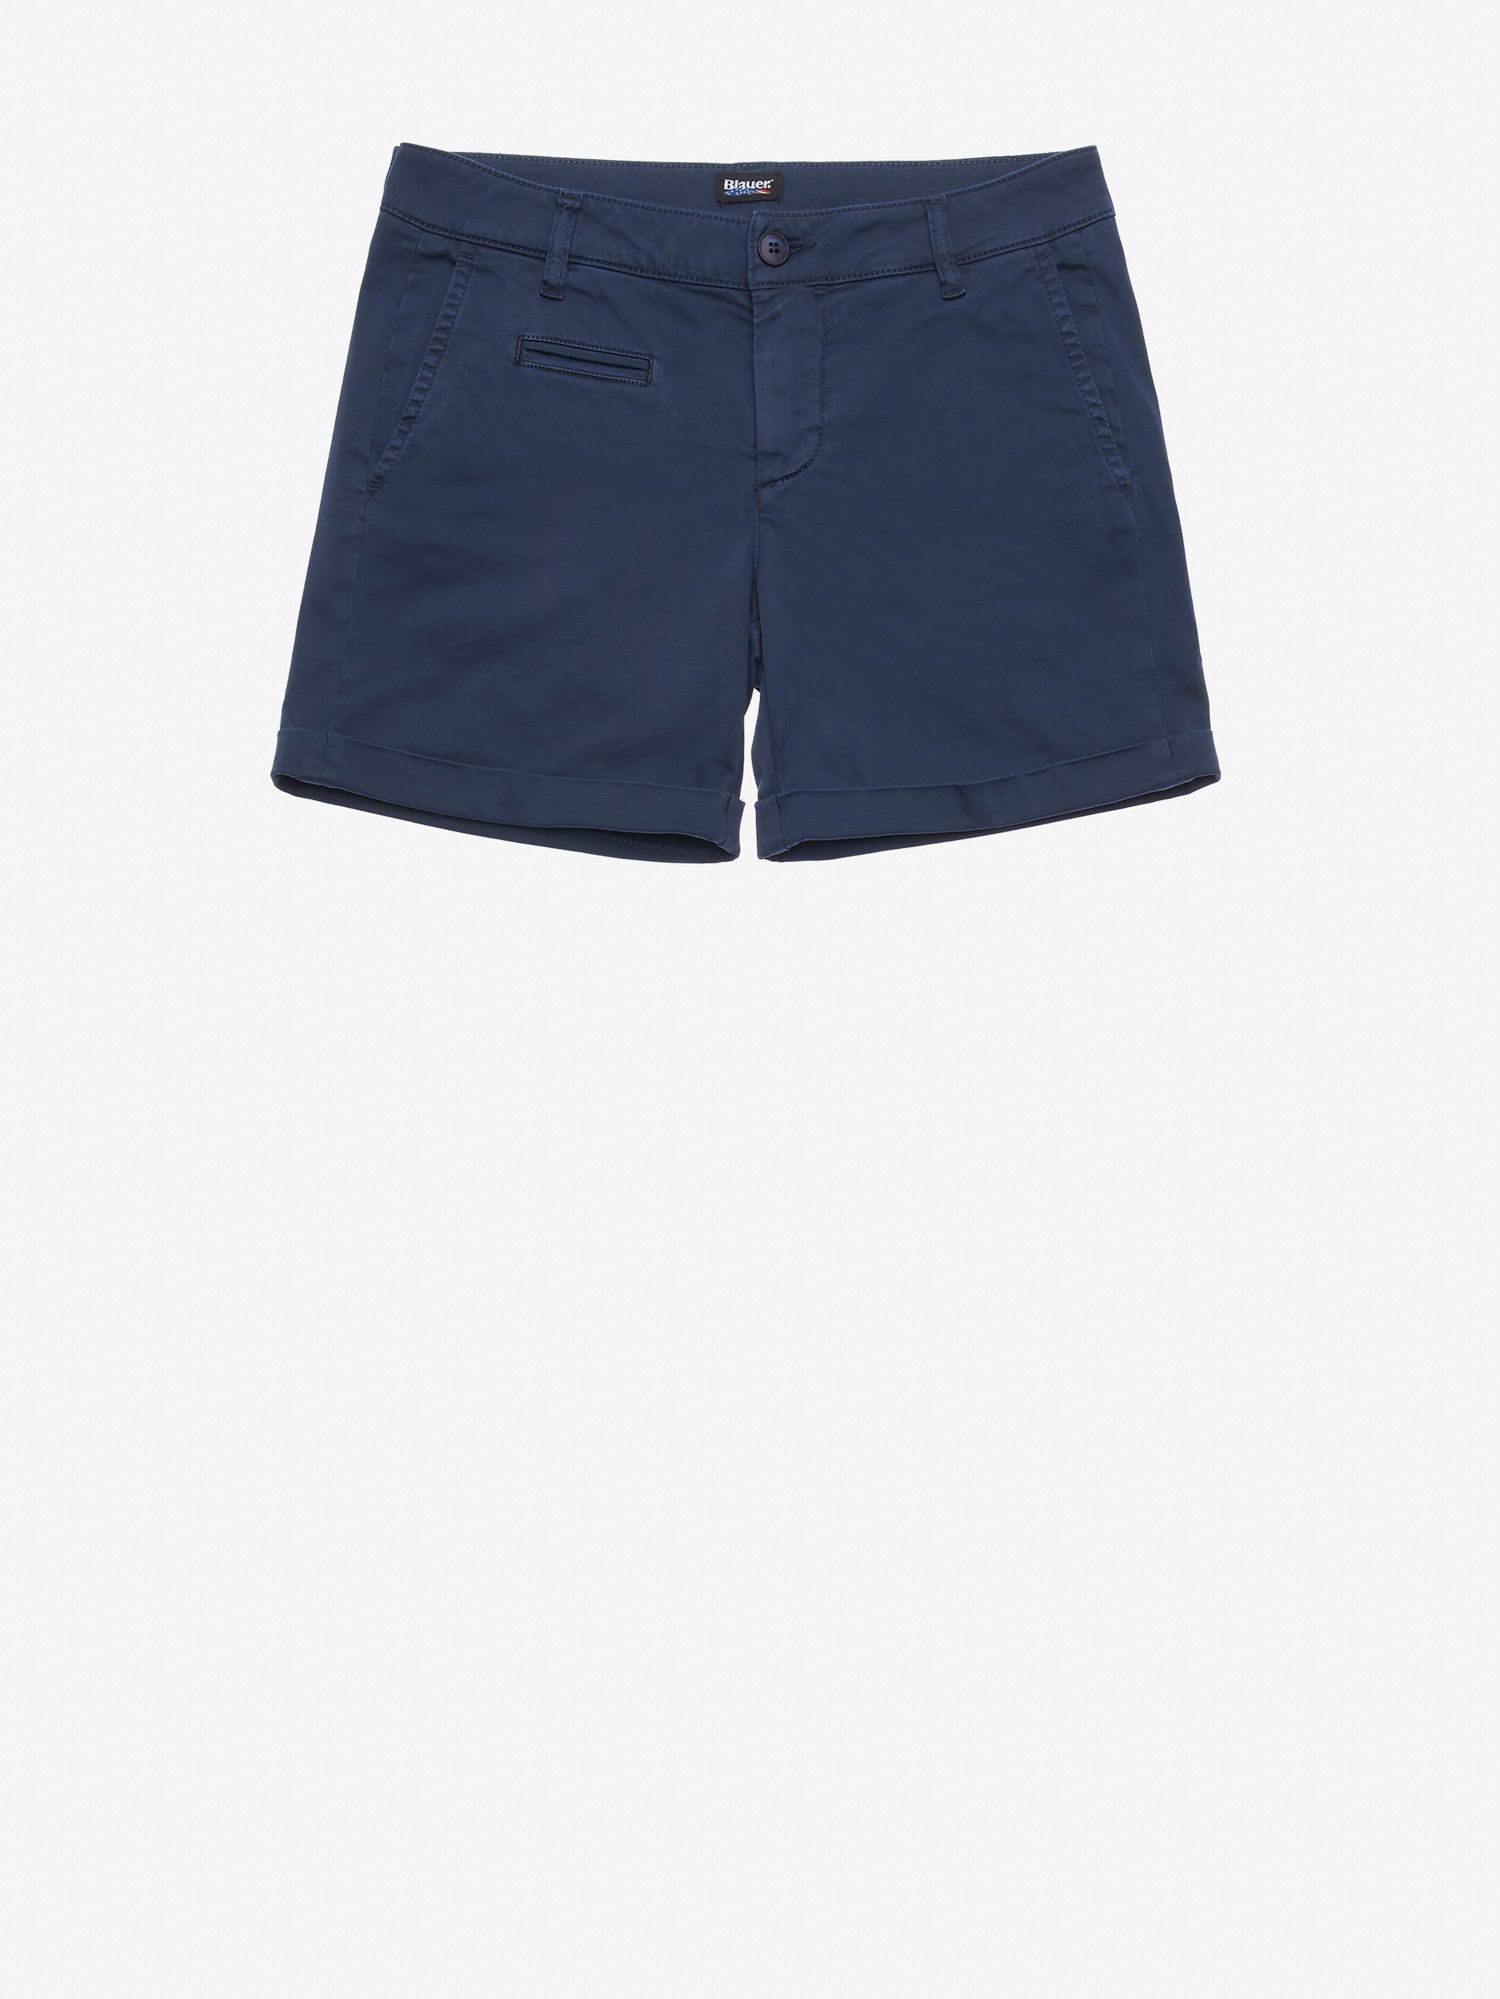 Blauer - STRETCH COTTON SATIN SHORTS - Blue Ink - Blauer